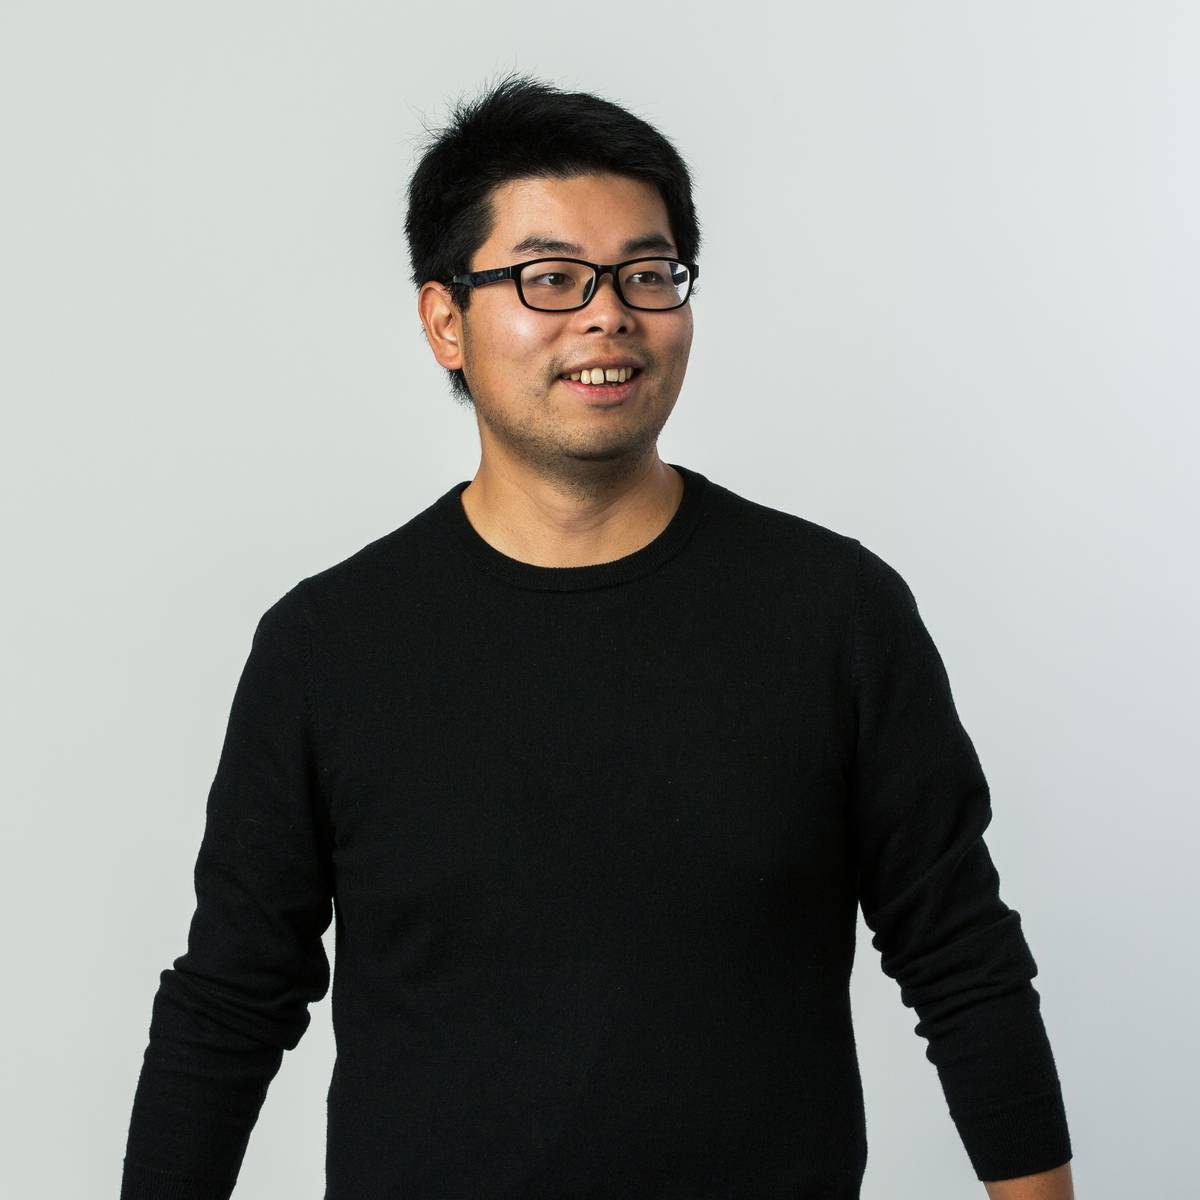 A profile image of Alex Li